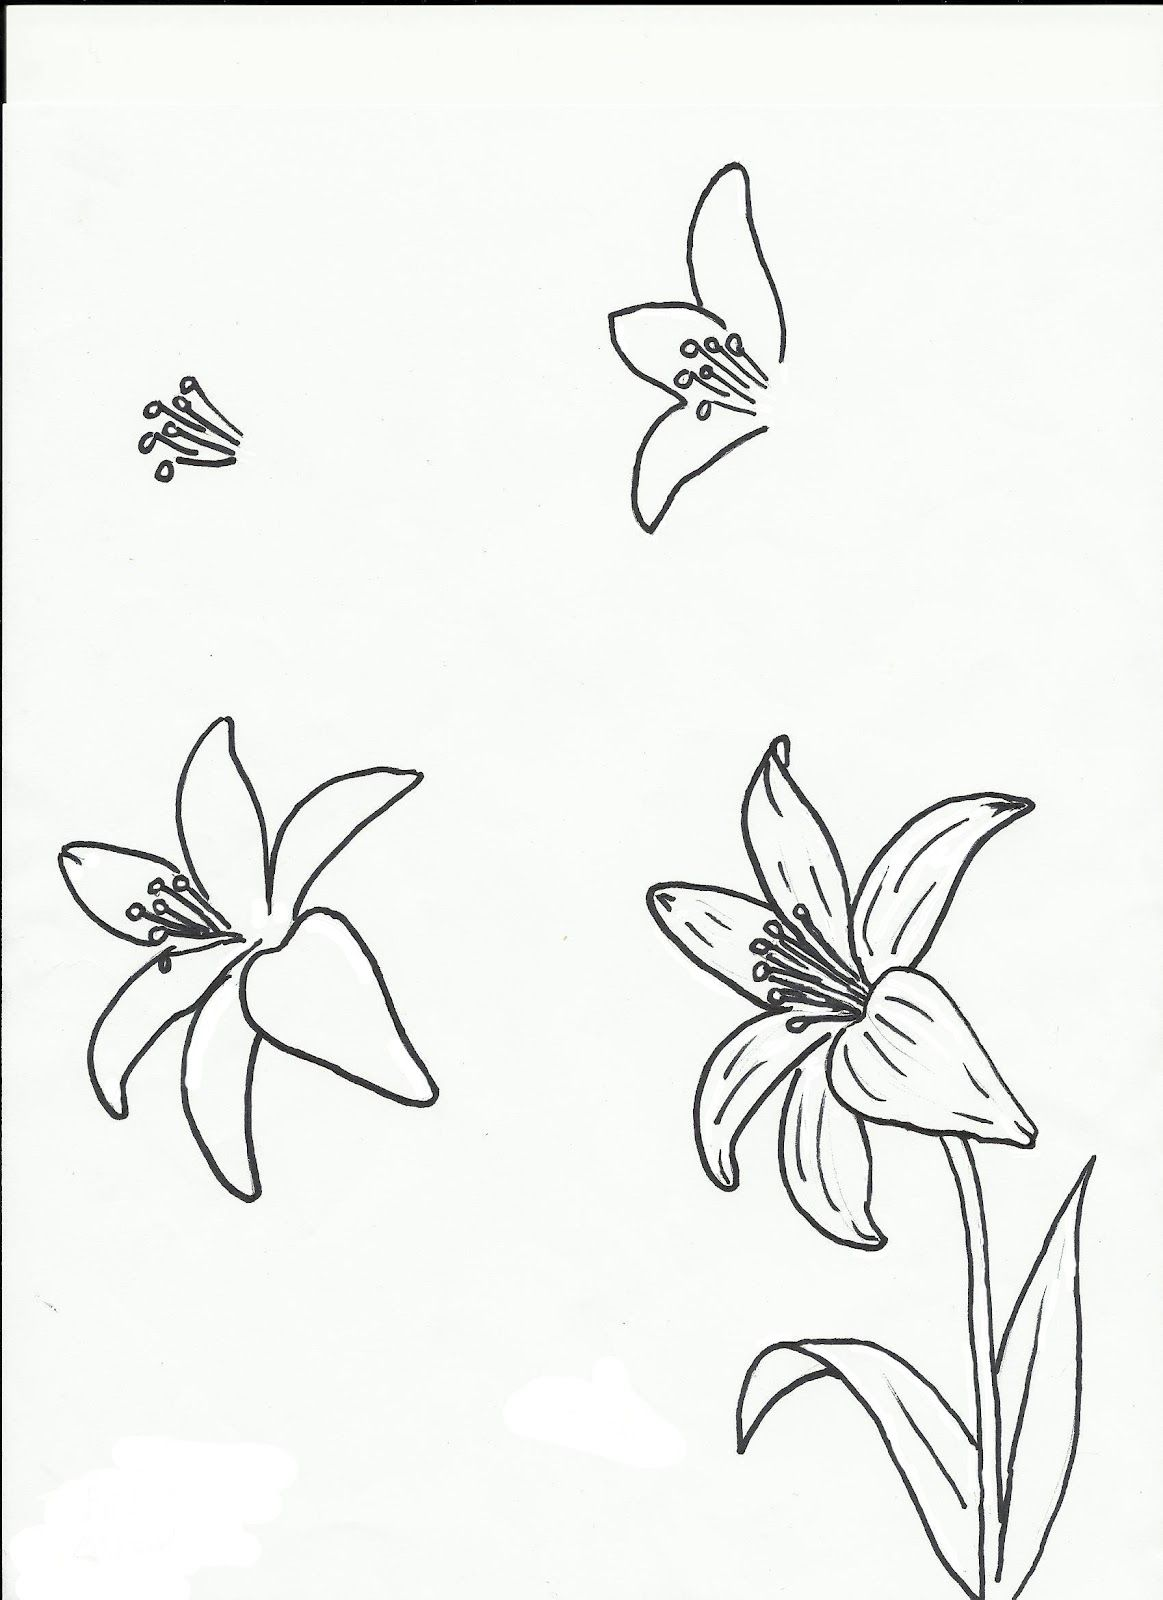 Calla Lily Line Drawing At Getdrawings Free For Personal Use